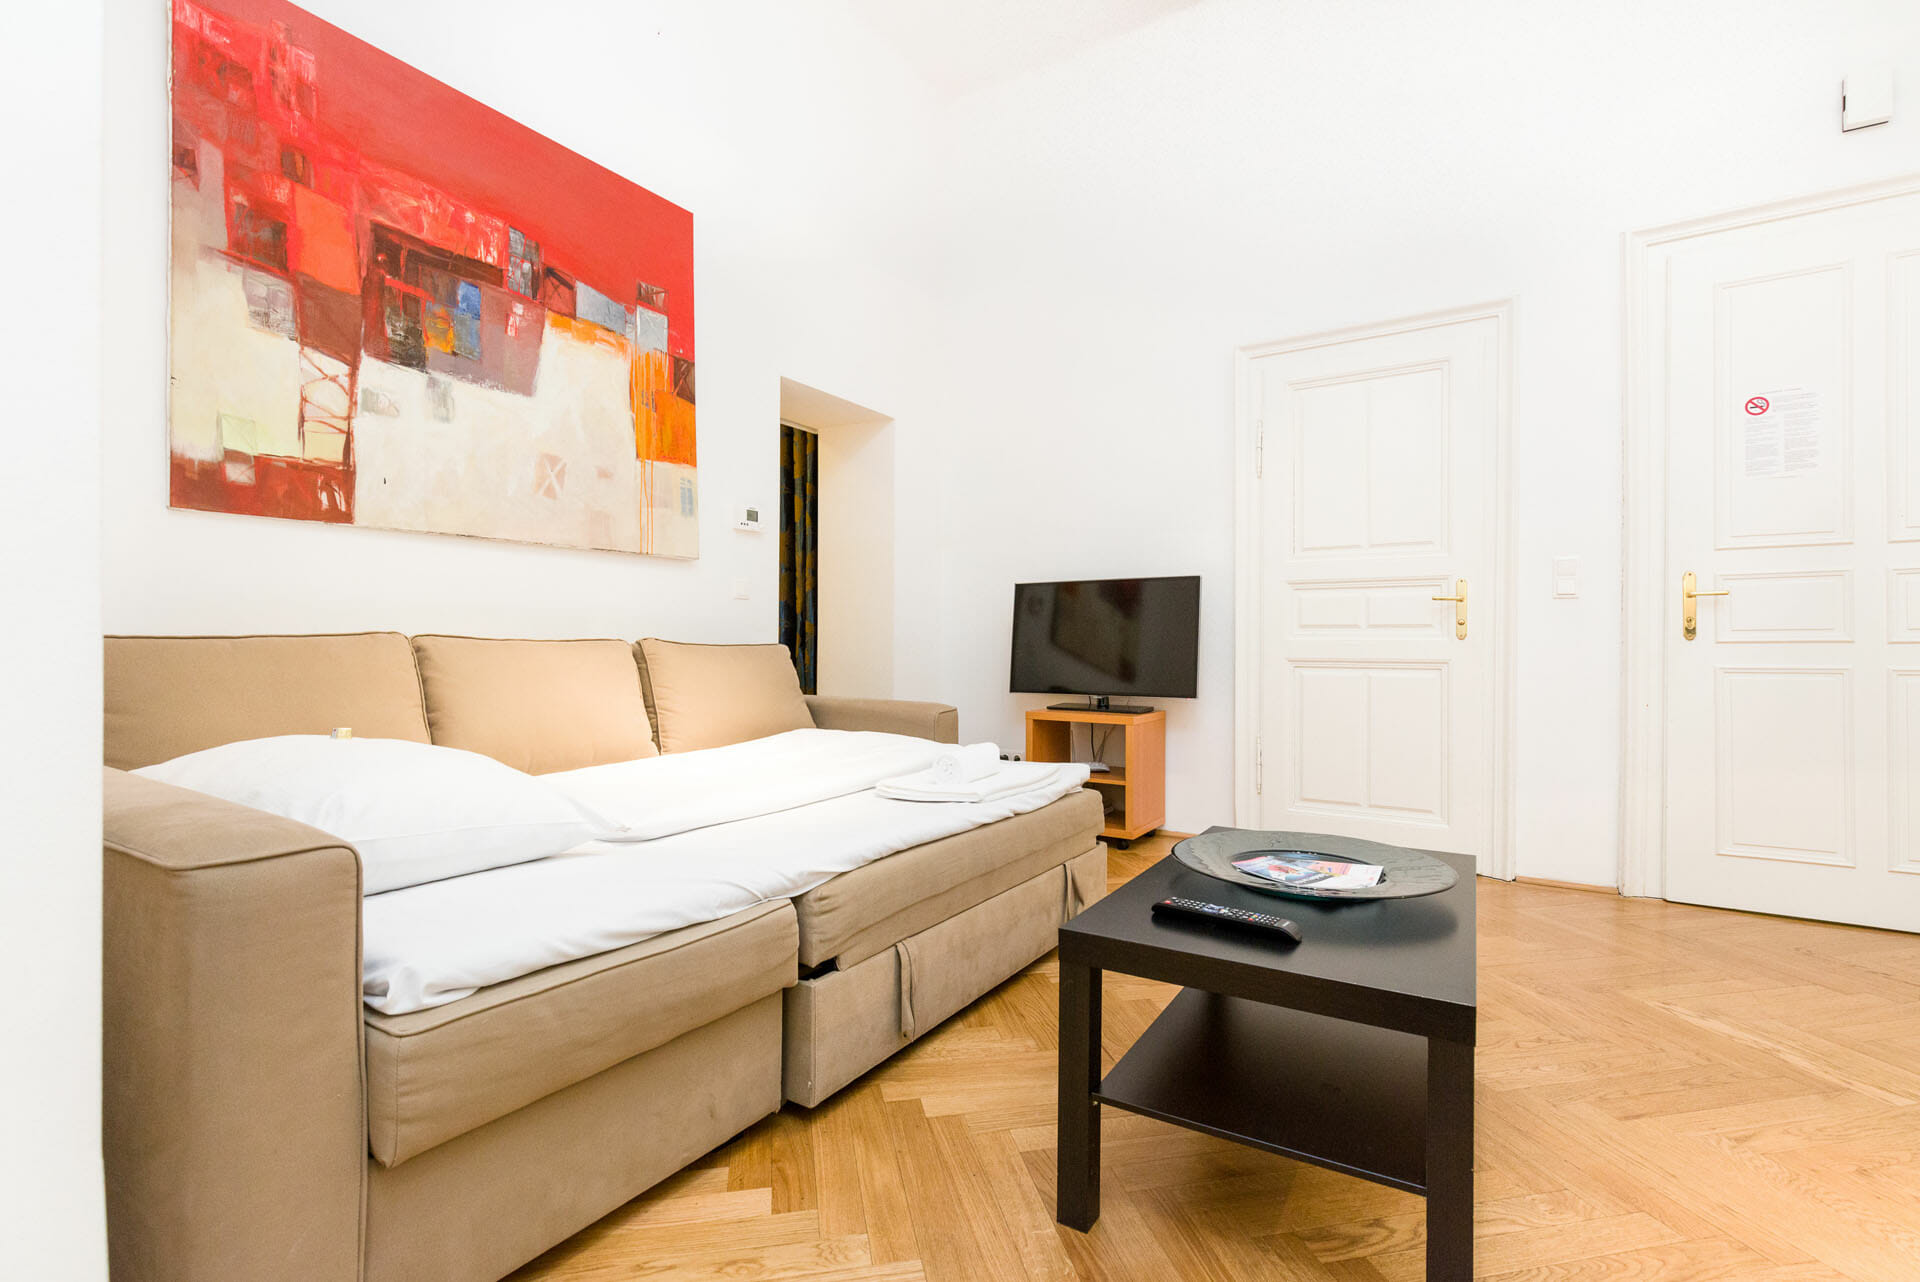 Prestige Apartments in Vienna Austria.Luxury Apartment in Vienna's City Center.Graben 28.This one bedroom apartment is situated in the ideal city center of Vienna the Graben. The apartment is fully furnished, TV, Cable, wireless, king size bed, cafe machine, wash machine and lots more.